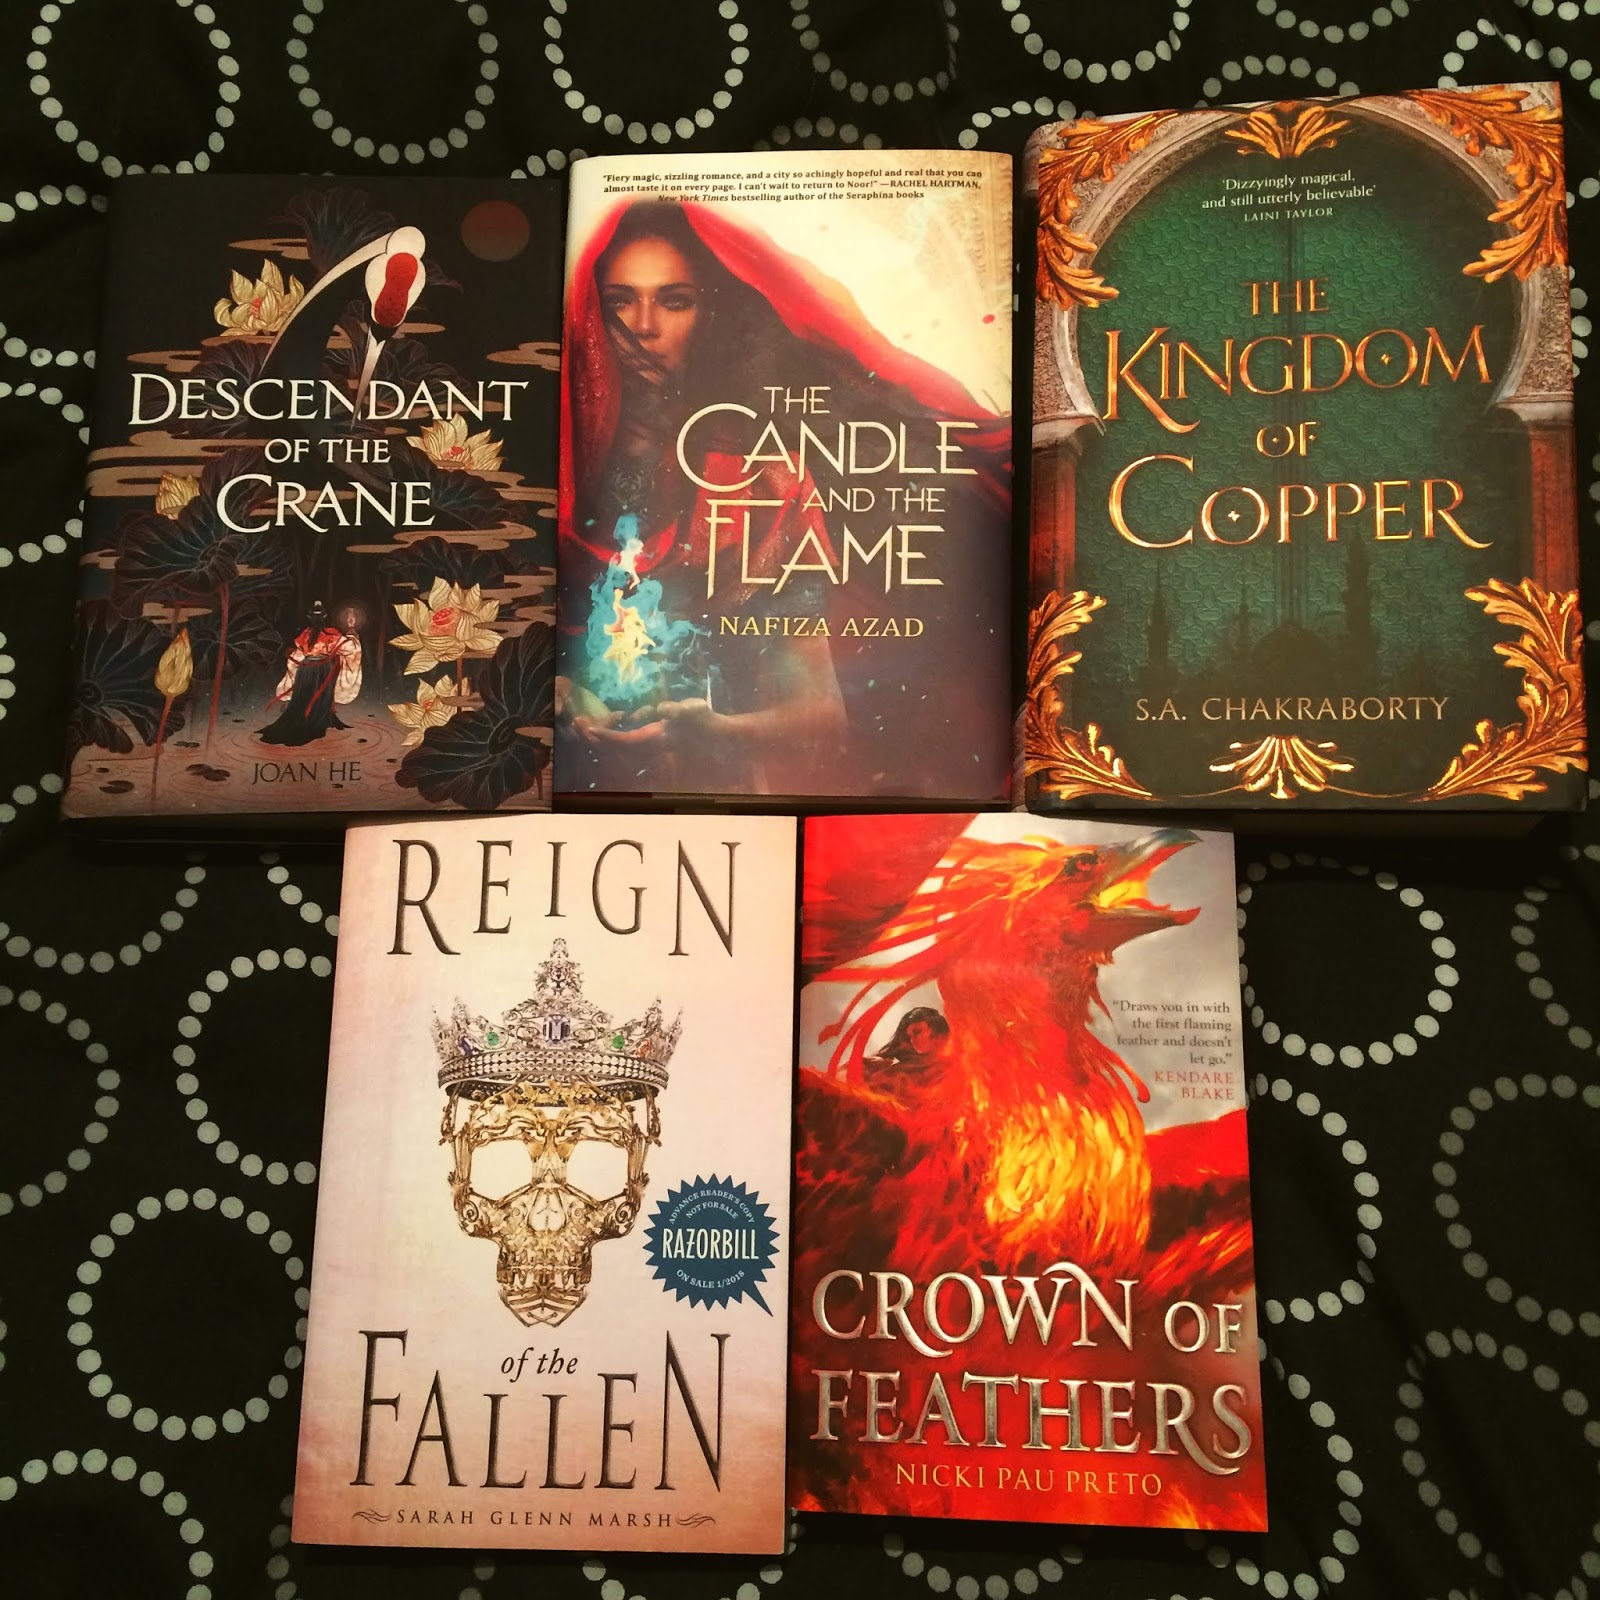 Photo of Descendant of the Crane by Joan He, The Candle and the Flame by Nafiza Azad, The Kingdom of Copper by S. A. Chakraborty, Reign of the Fallen by Sarah Glenn Marsh, and Crown of Feathers by Nicki Pau Preto